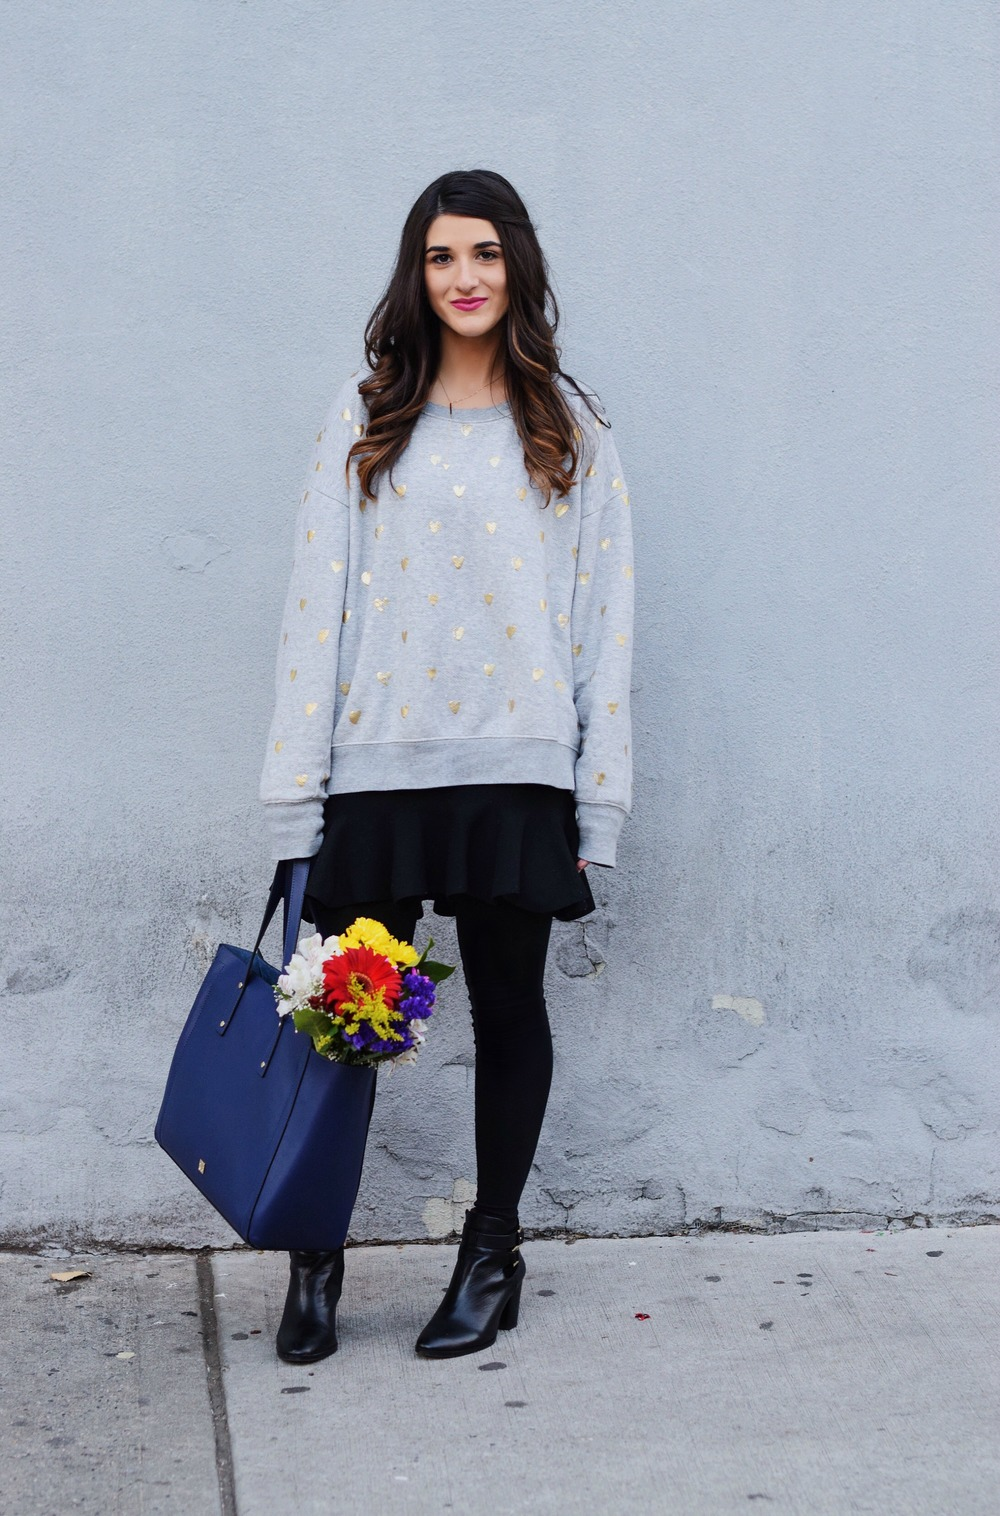 Oversized Sweatshirt Ivanka Trump Soho Tote Louboutins & Love Fashion Blog Esther Santer NYC Street Style Blogger Nordstrom Black Booties Blue Bag Pocketbook Purse Shopping What To Wear Jcrew Winter Inspo Model Photoshoot Hair Girl Women Skirt Flowers.jpg